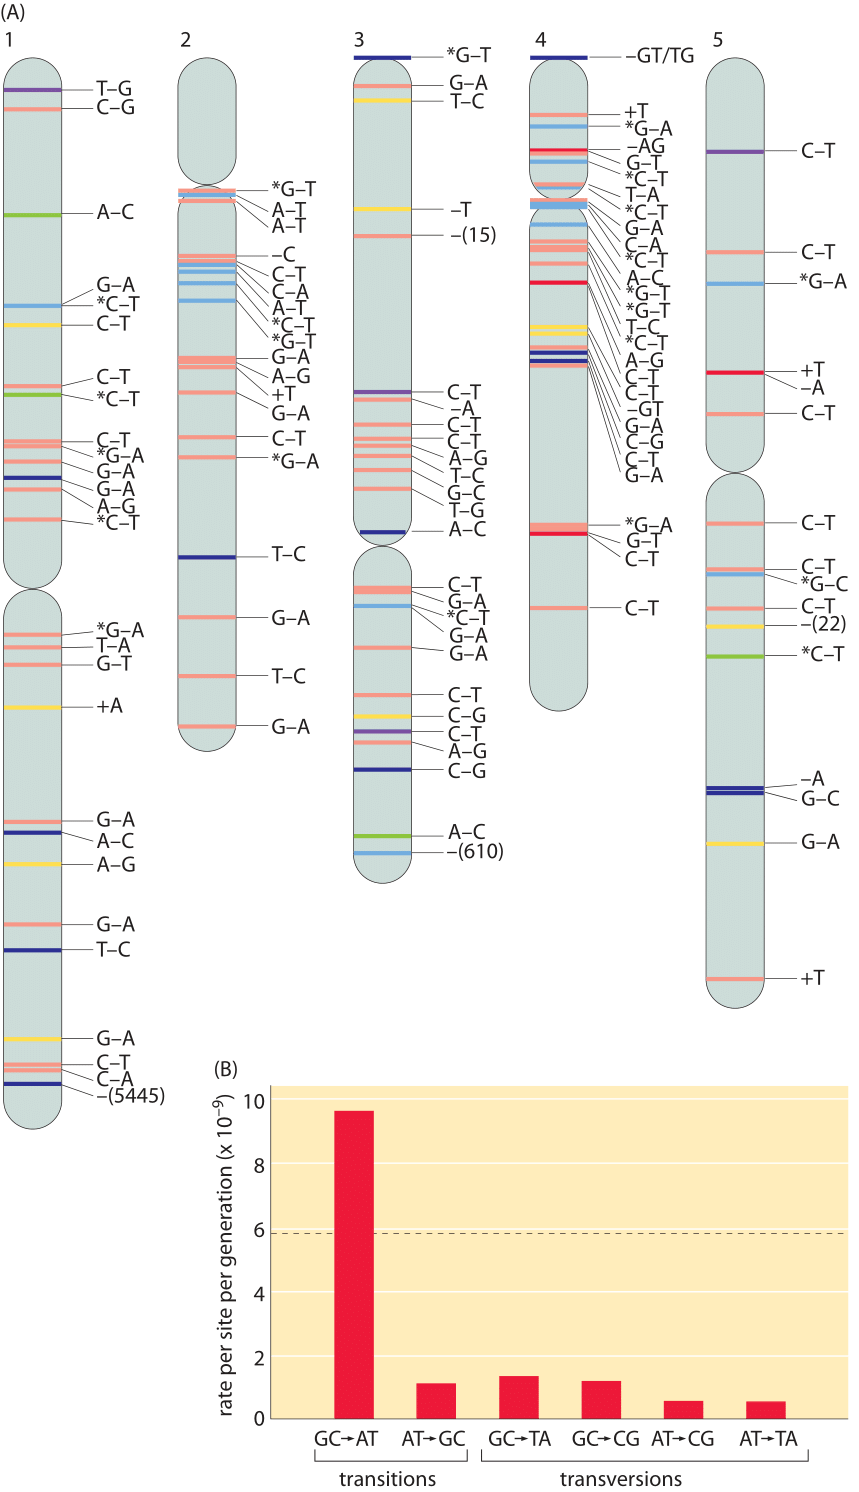 Figure 4: (A), Spontaneous mutations across the A. thaliana chromosomes after 30 generations (single seed dependents). Color definitions: red, intergenic region; yellow, intron; dark blue, nonsynonymous substitution, shift of reading frame for short indels, or gene deletion for large deletions; green, synonymous substitution; purple, UTR; and light blue, transposable element. + and – refer to insertions and deletions respectively. Asterisk denotes methylated cytosine. (B), The rate of mutations varies across different base pairs. Mutation rates are shown per site per generation. The overall mutation rate, which is the average of the total mutation rates at A:T and G:C sites, and its standard error in gray are shown in the background. The total mutation rate sums for example for the base pair A:T the rates of change to C:G, G:C and T:A. Adapted from S. Ossowski et al. Science, 327:92, 2009.